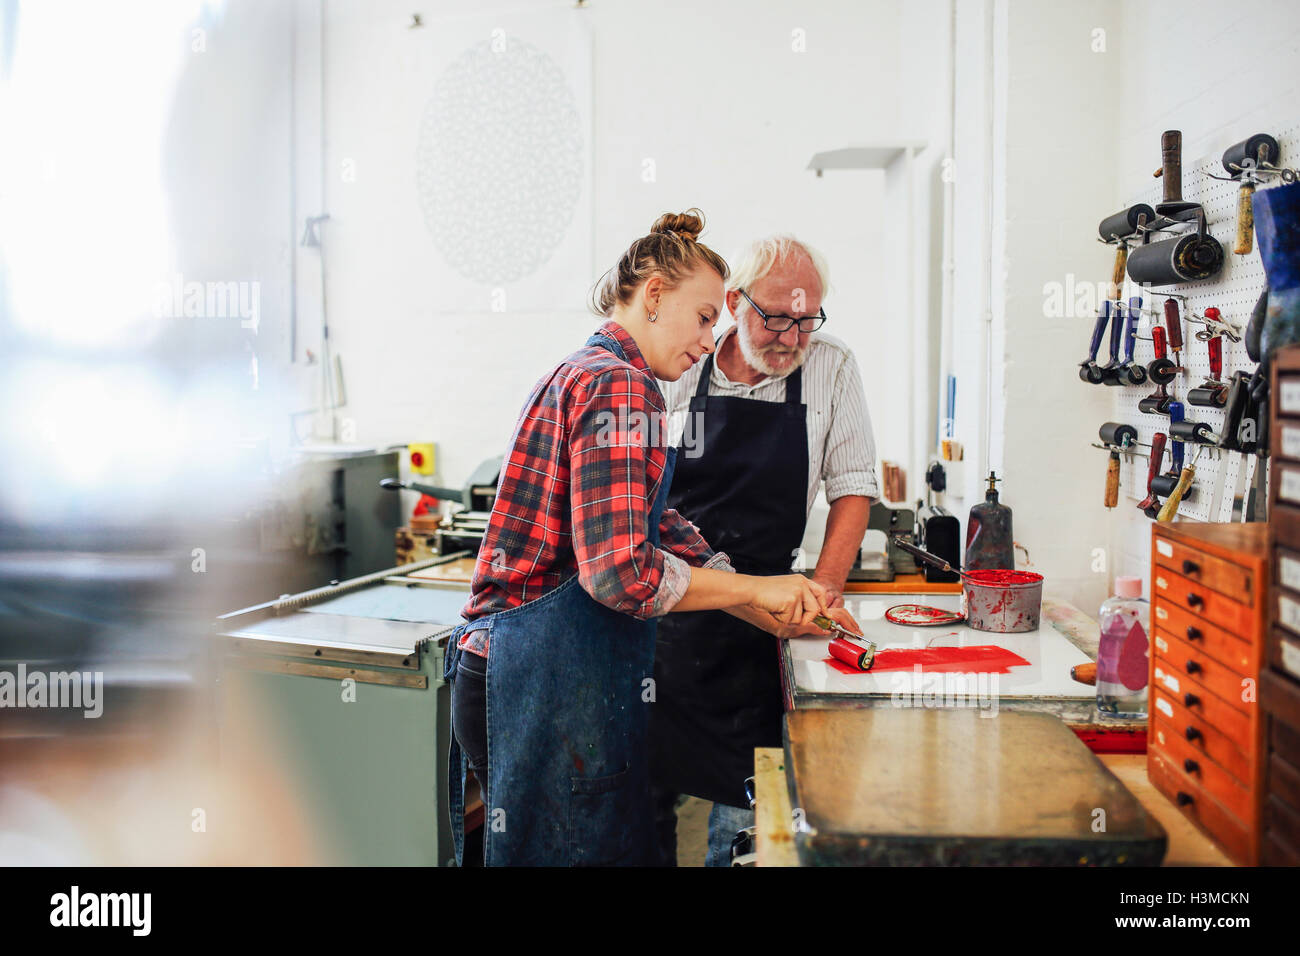 Senior craftsman/technician supervising young woman as she uses ink roller for letterpress printing in book arts - Stock Image